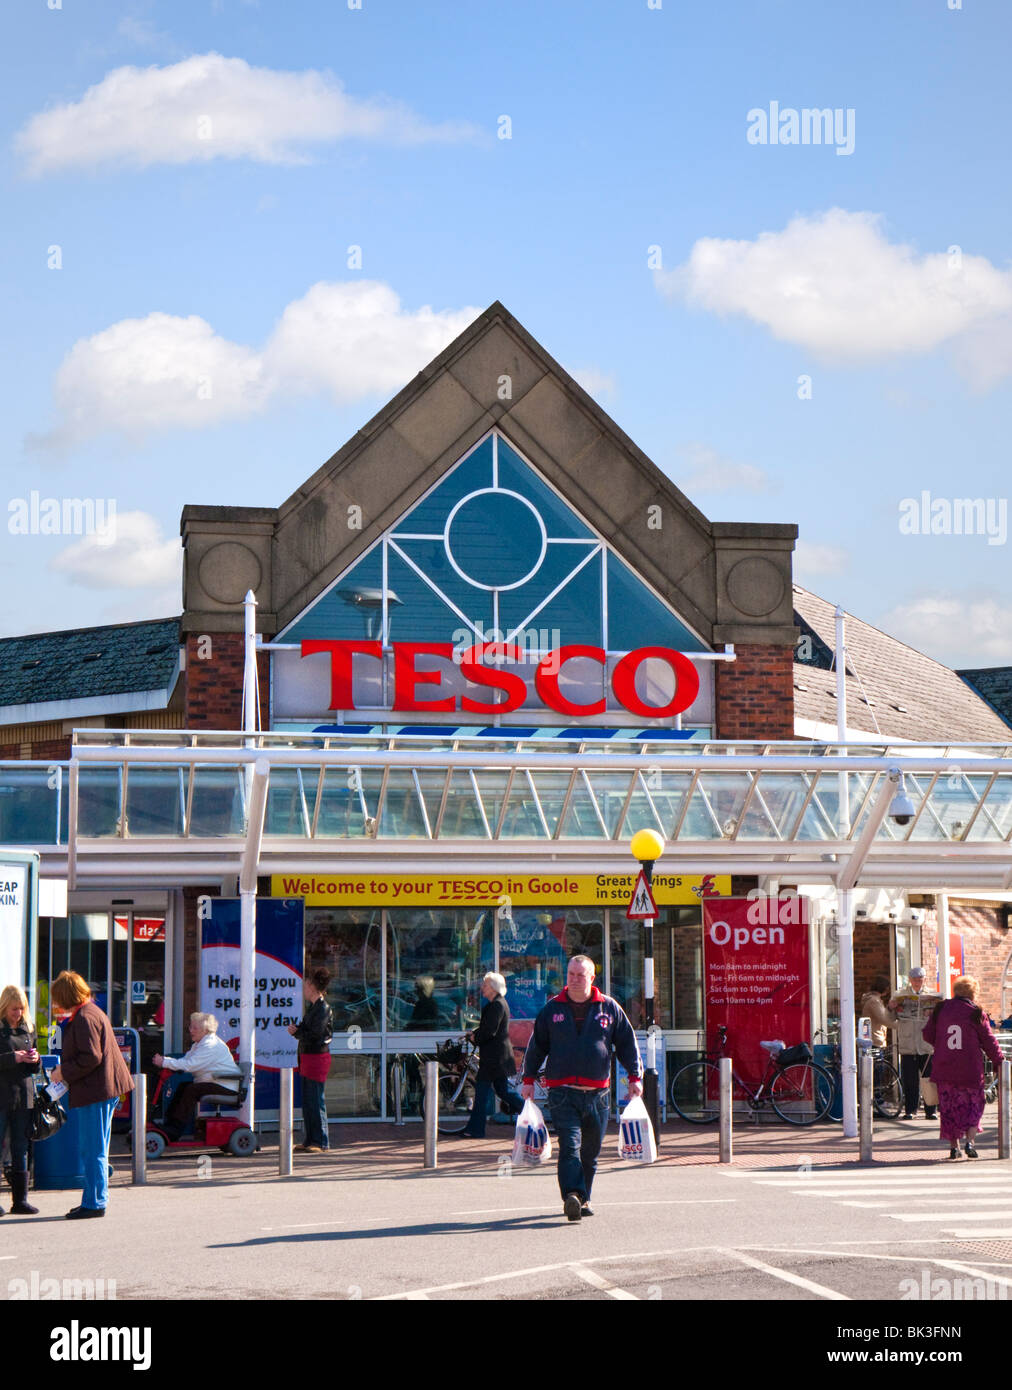 Tesco supermarket store, England, UKStock Photo